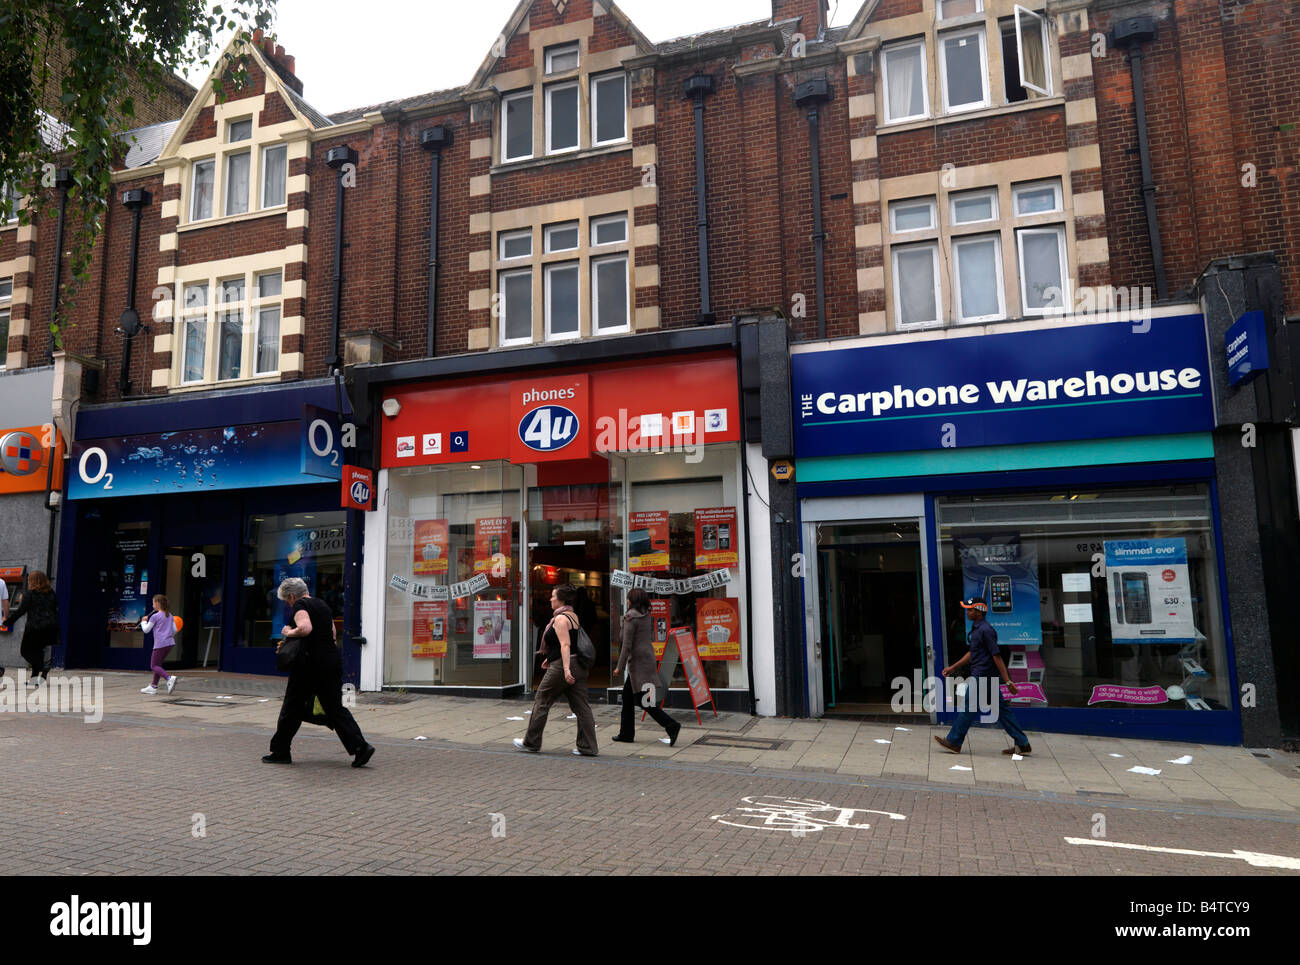 best website new authentic another chance Three Phone Companies Sutton High Street Carphone Warehouse ...